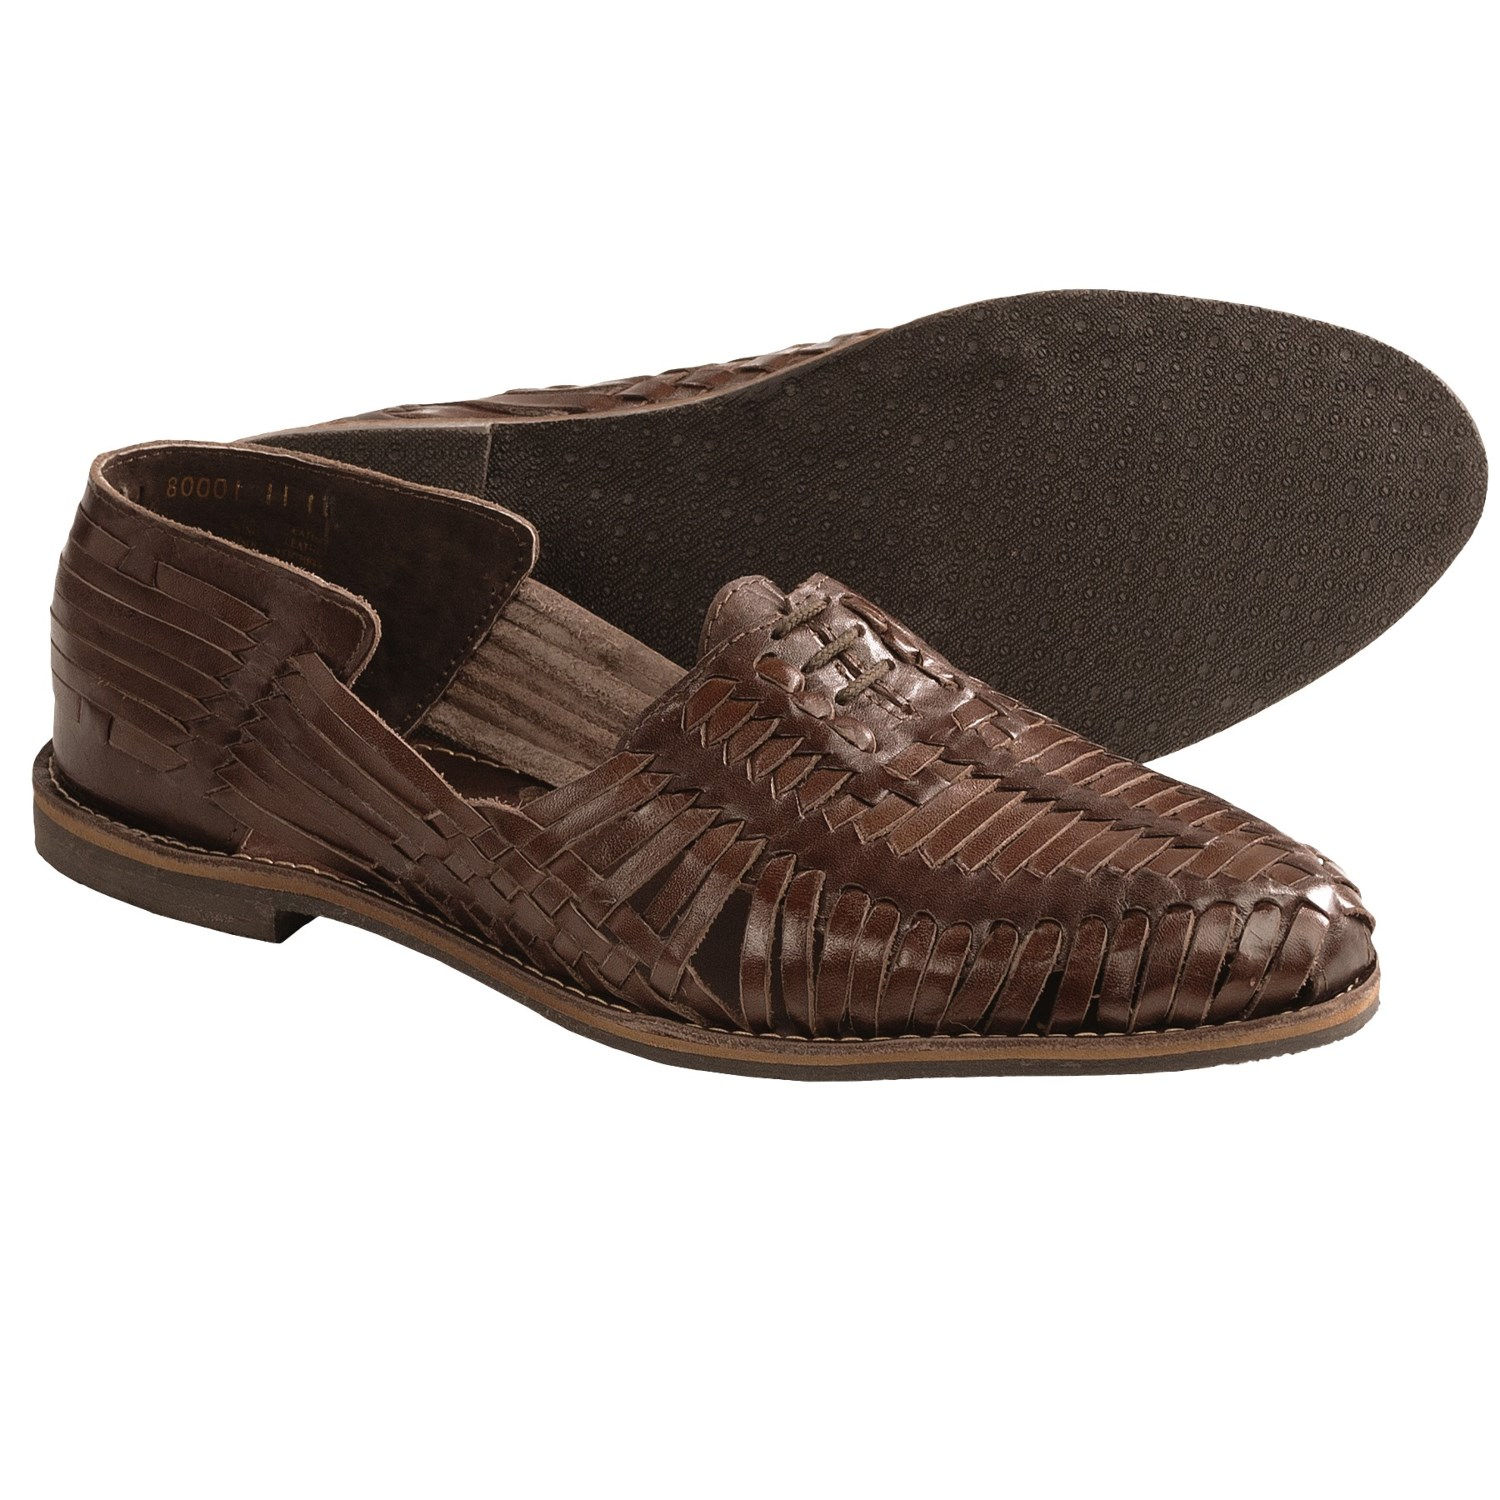 j d fisk hugo loafer shoes woven leather for